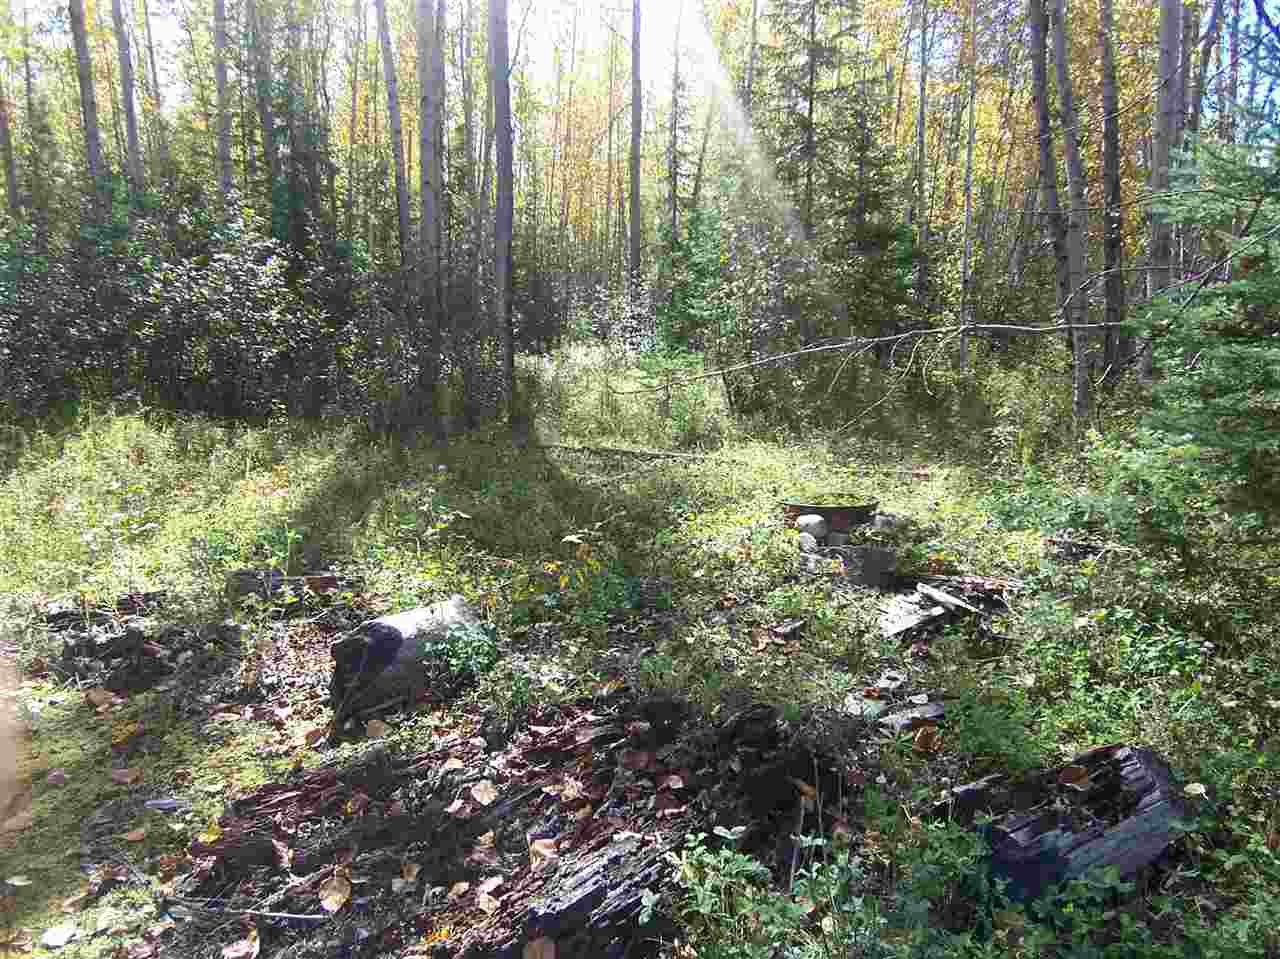 Photo 10: Photos: 4682 BARKERVILLE Highway in Quesnel: Quesnel - Rural North Land for sale (Quesnel (Zone 28))  : MLS®# R2105293